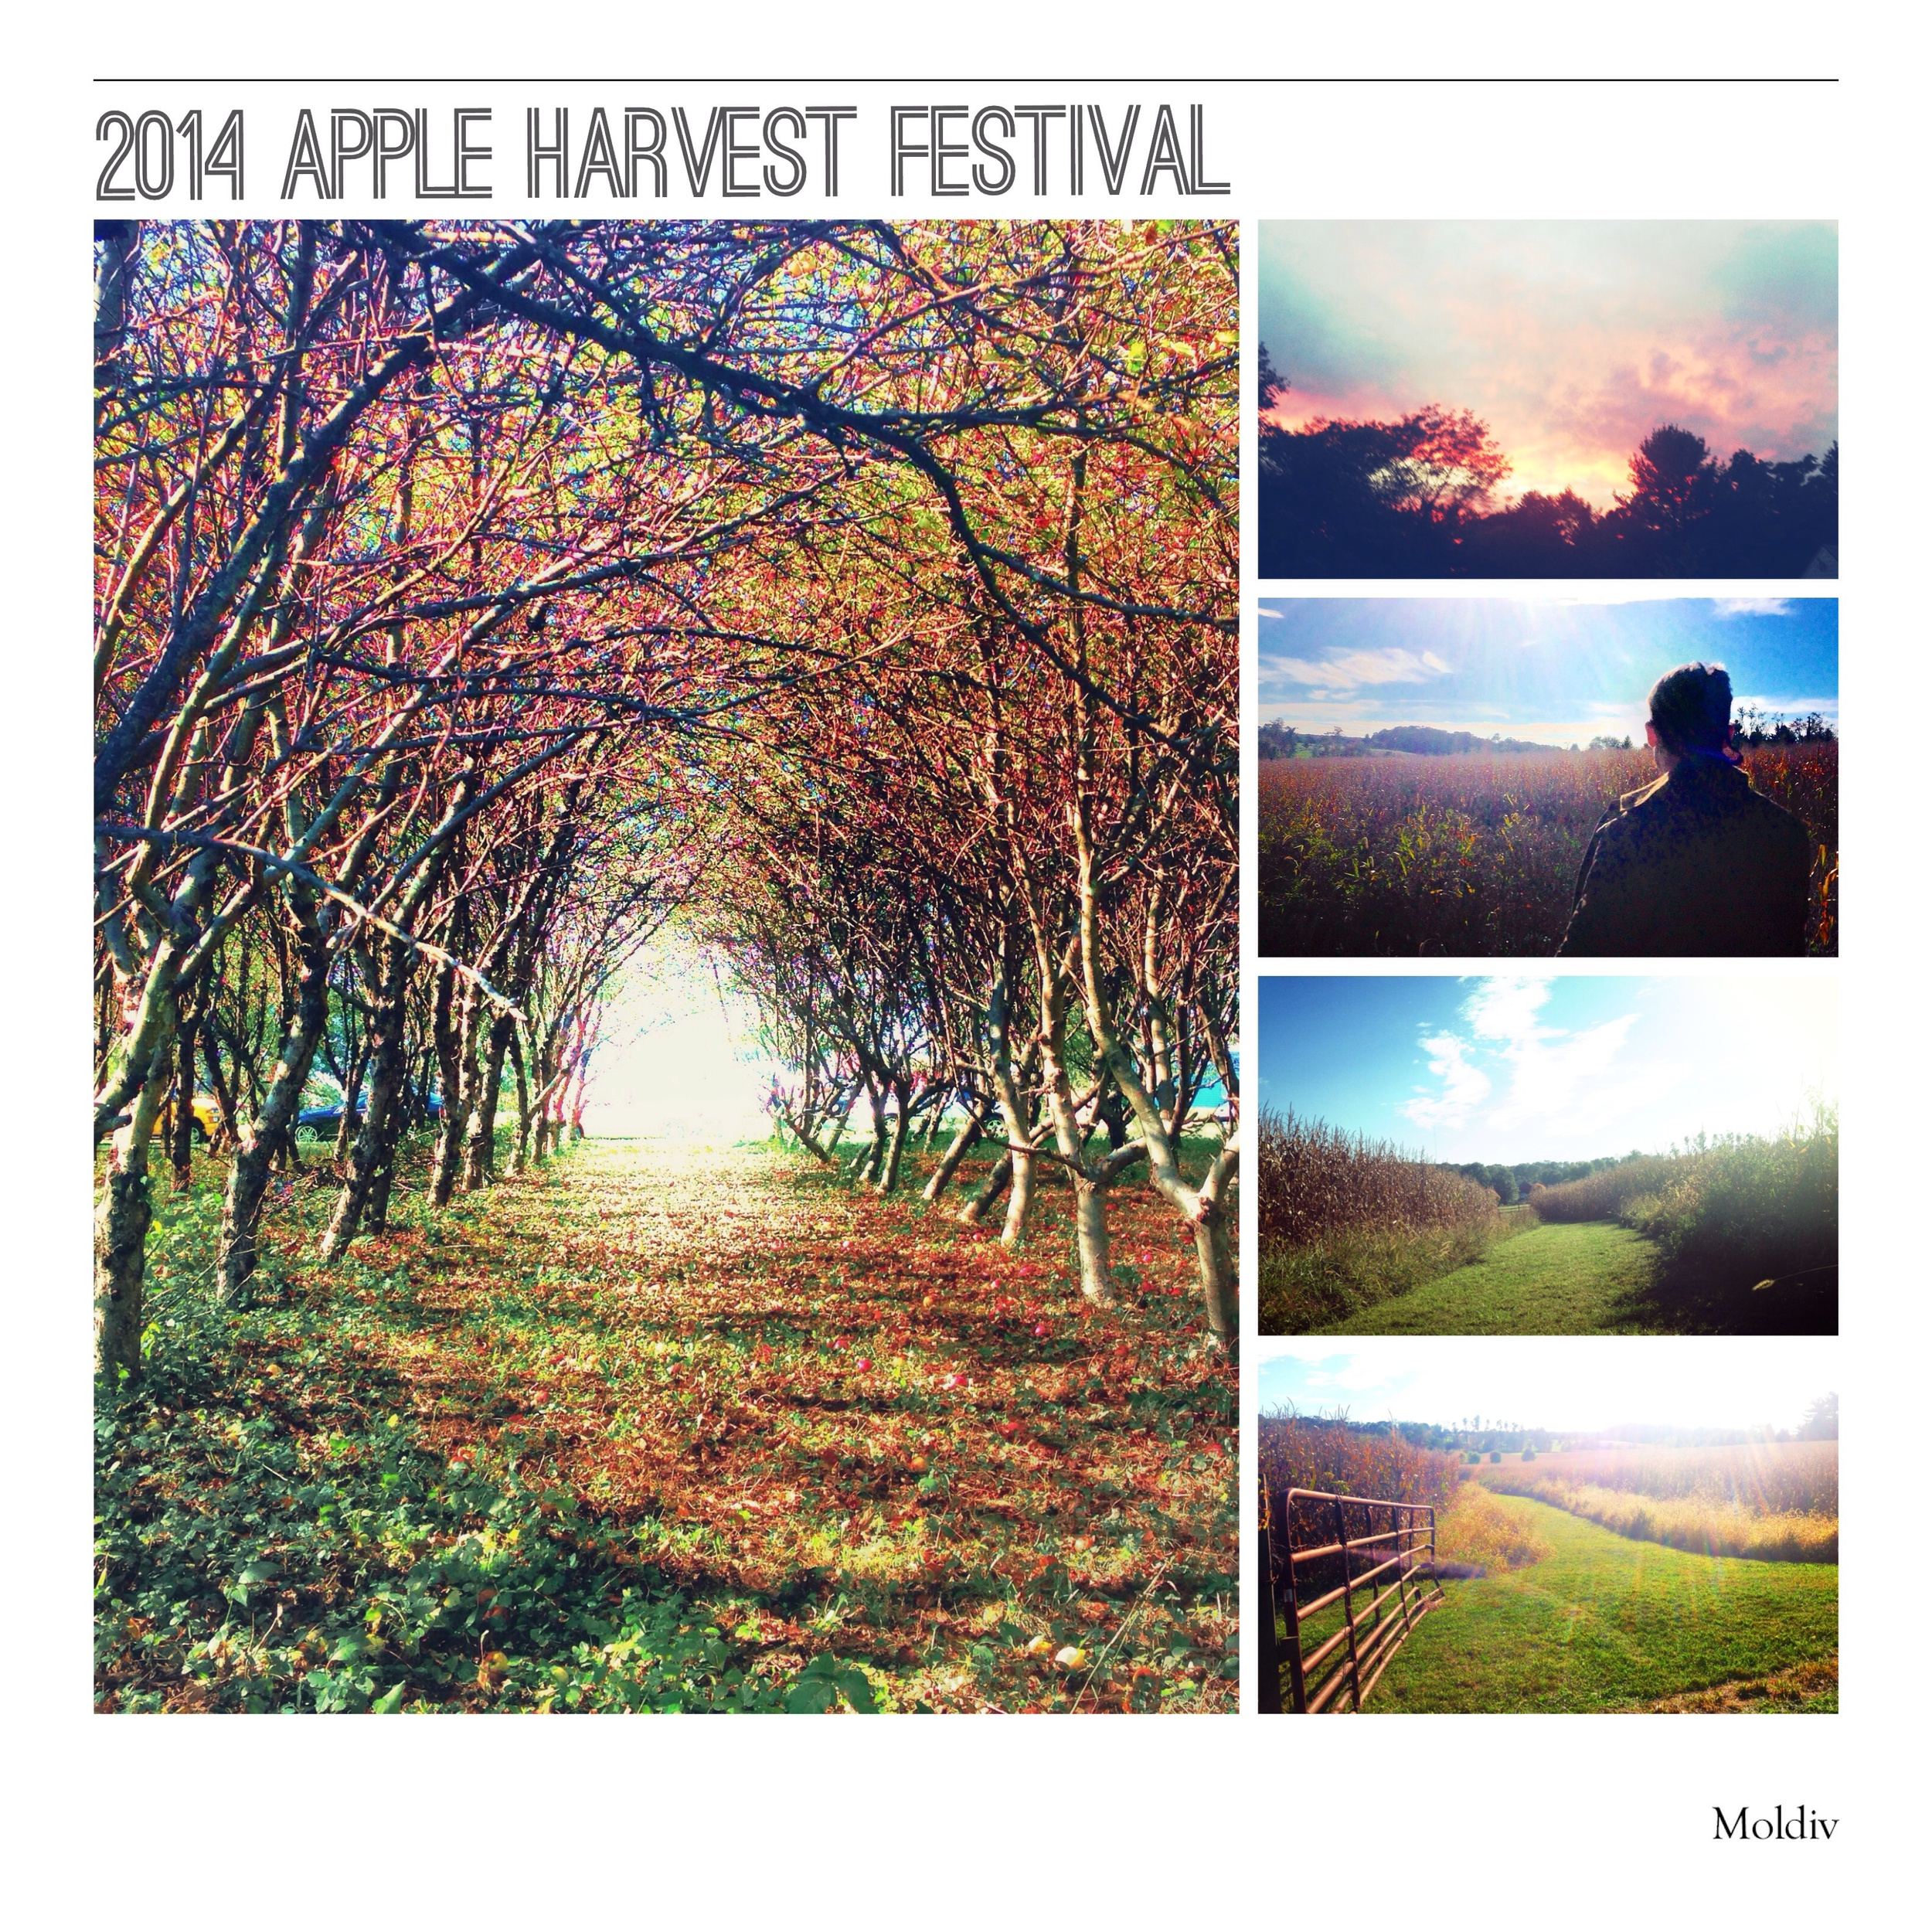 2014 Apple Harvest Festival.jpg